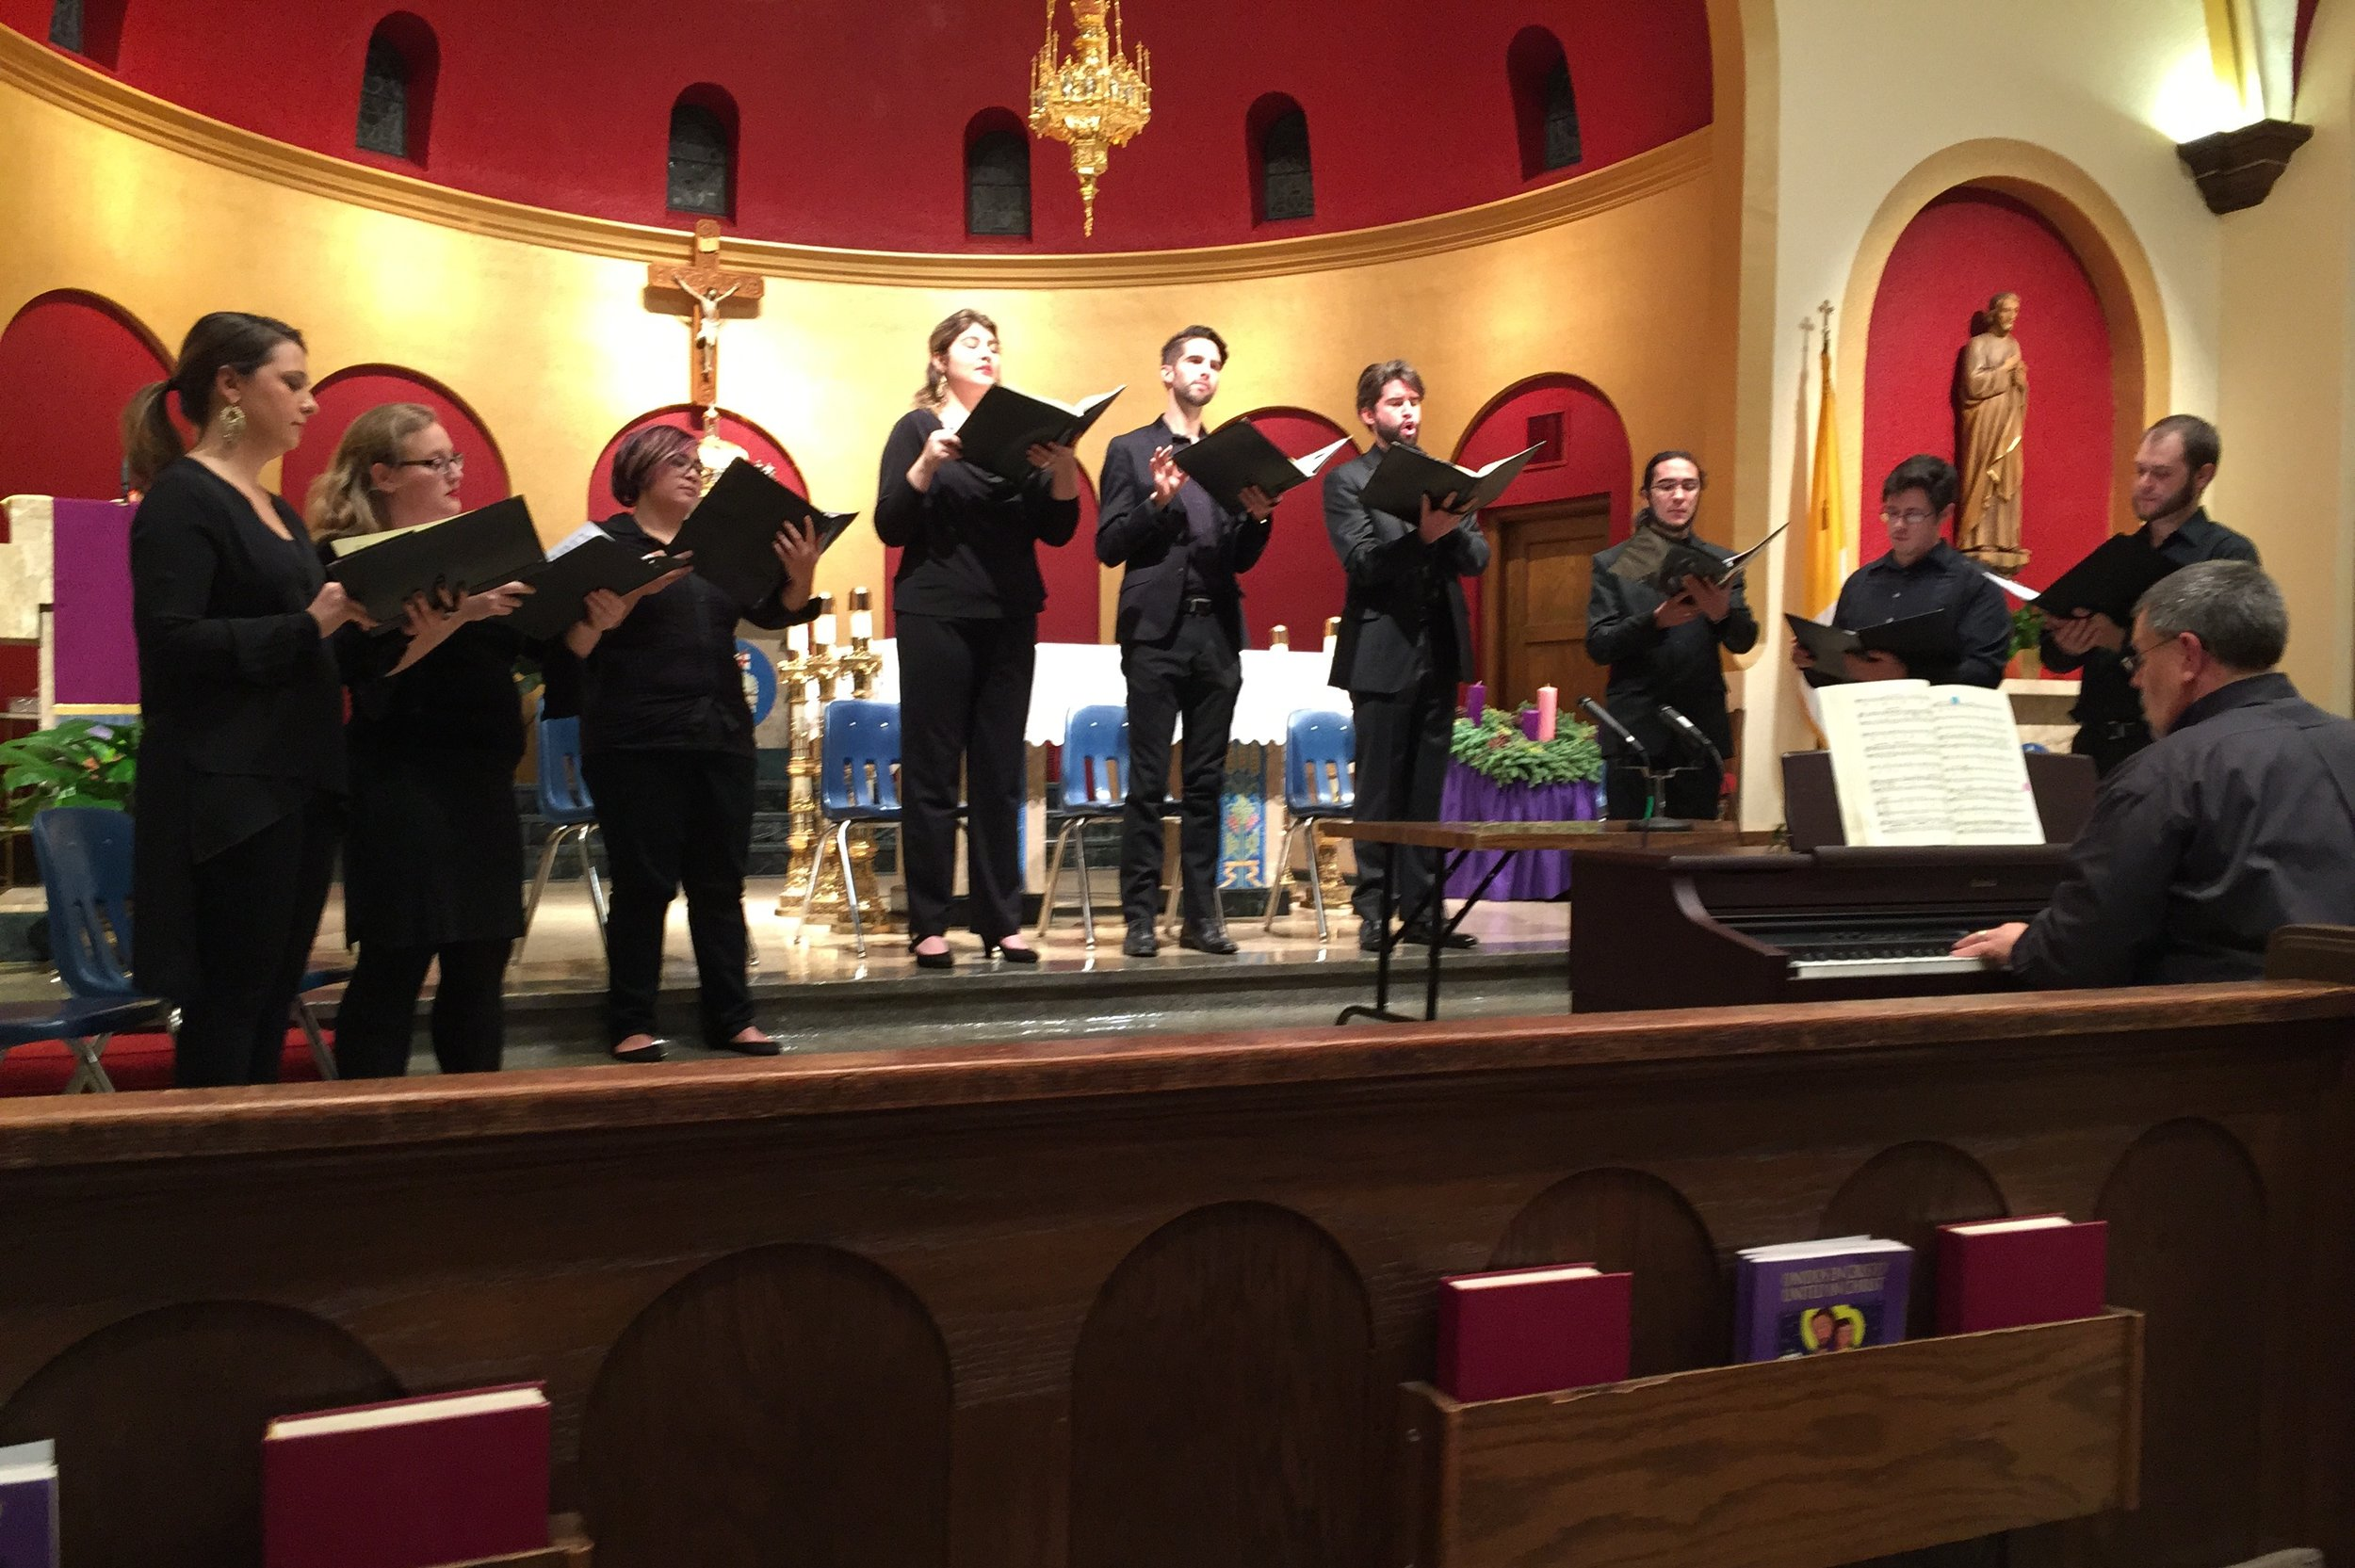 Four soloists and a five-person choir perform Jakub Jan Ryba's Czech Christmsas Mass in the beautiful sanctuary of St. John Nepomucene Catholic Church in Ennis. Left to right, Julianna Emanski, solo soprano; Amanda Jacobsen, soprano; Francesca Cacal, alto; Hannah Ceniseros, solo alto; Barrett Radziun, solo tenor; Brock Johnson, solo bass-baritone; Santiago Gutierrez Herrera, tenor; Hastings Reeves, bass; Lance Russell, base; and Dr. Thomas Sovik on keyboard.